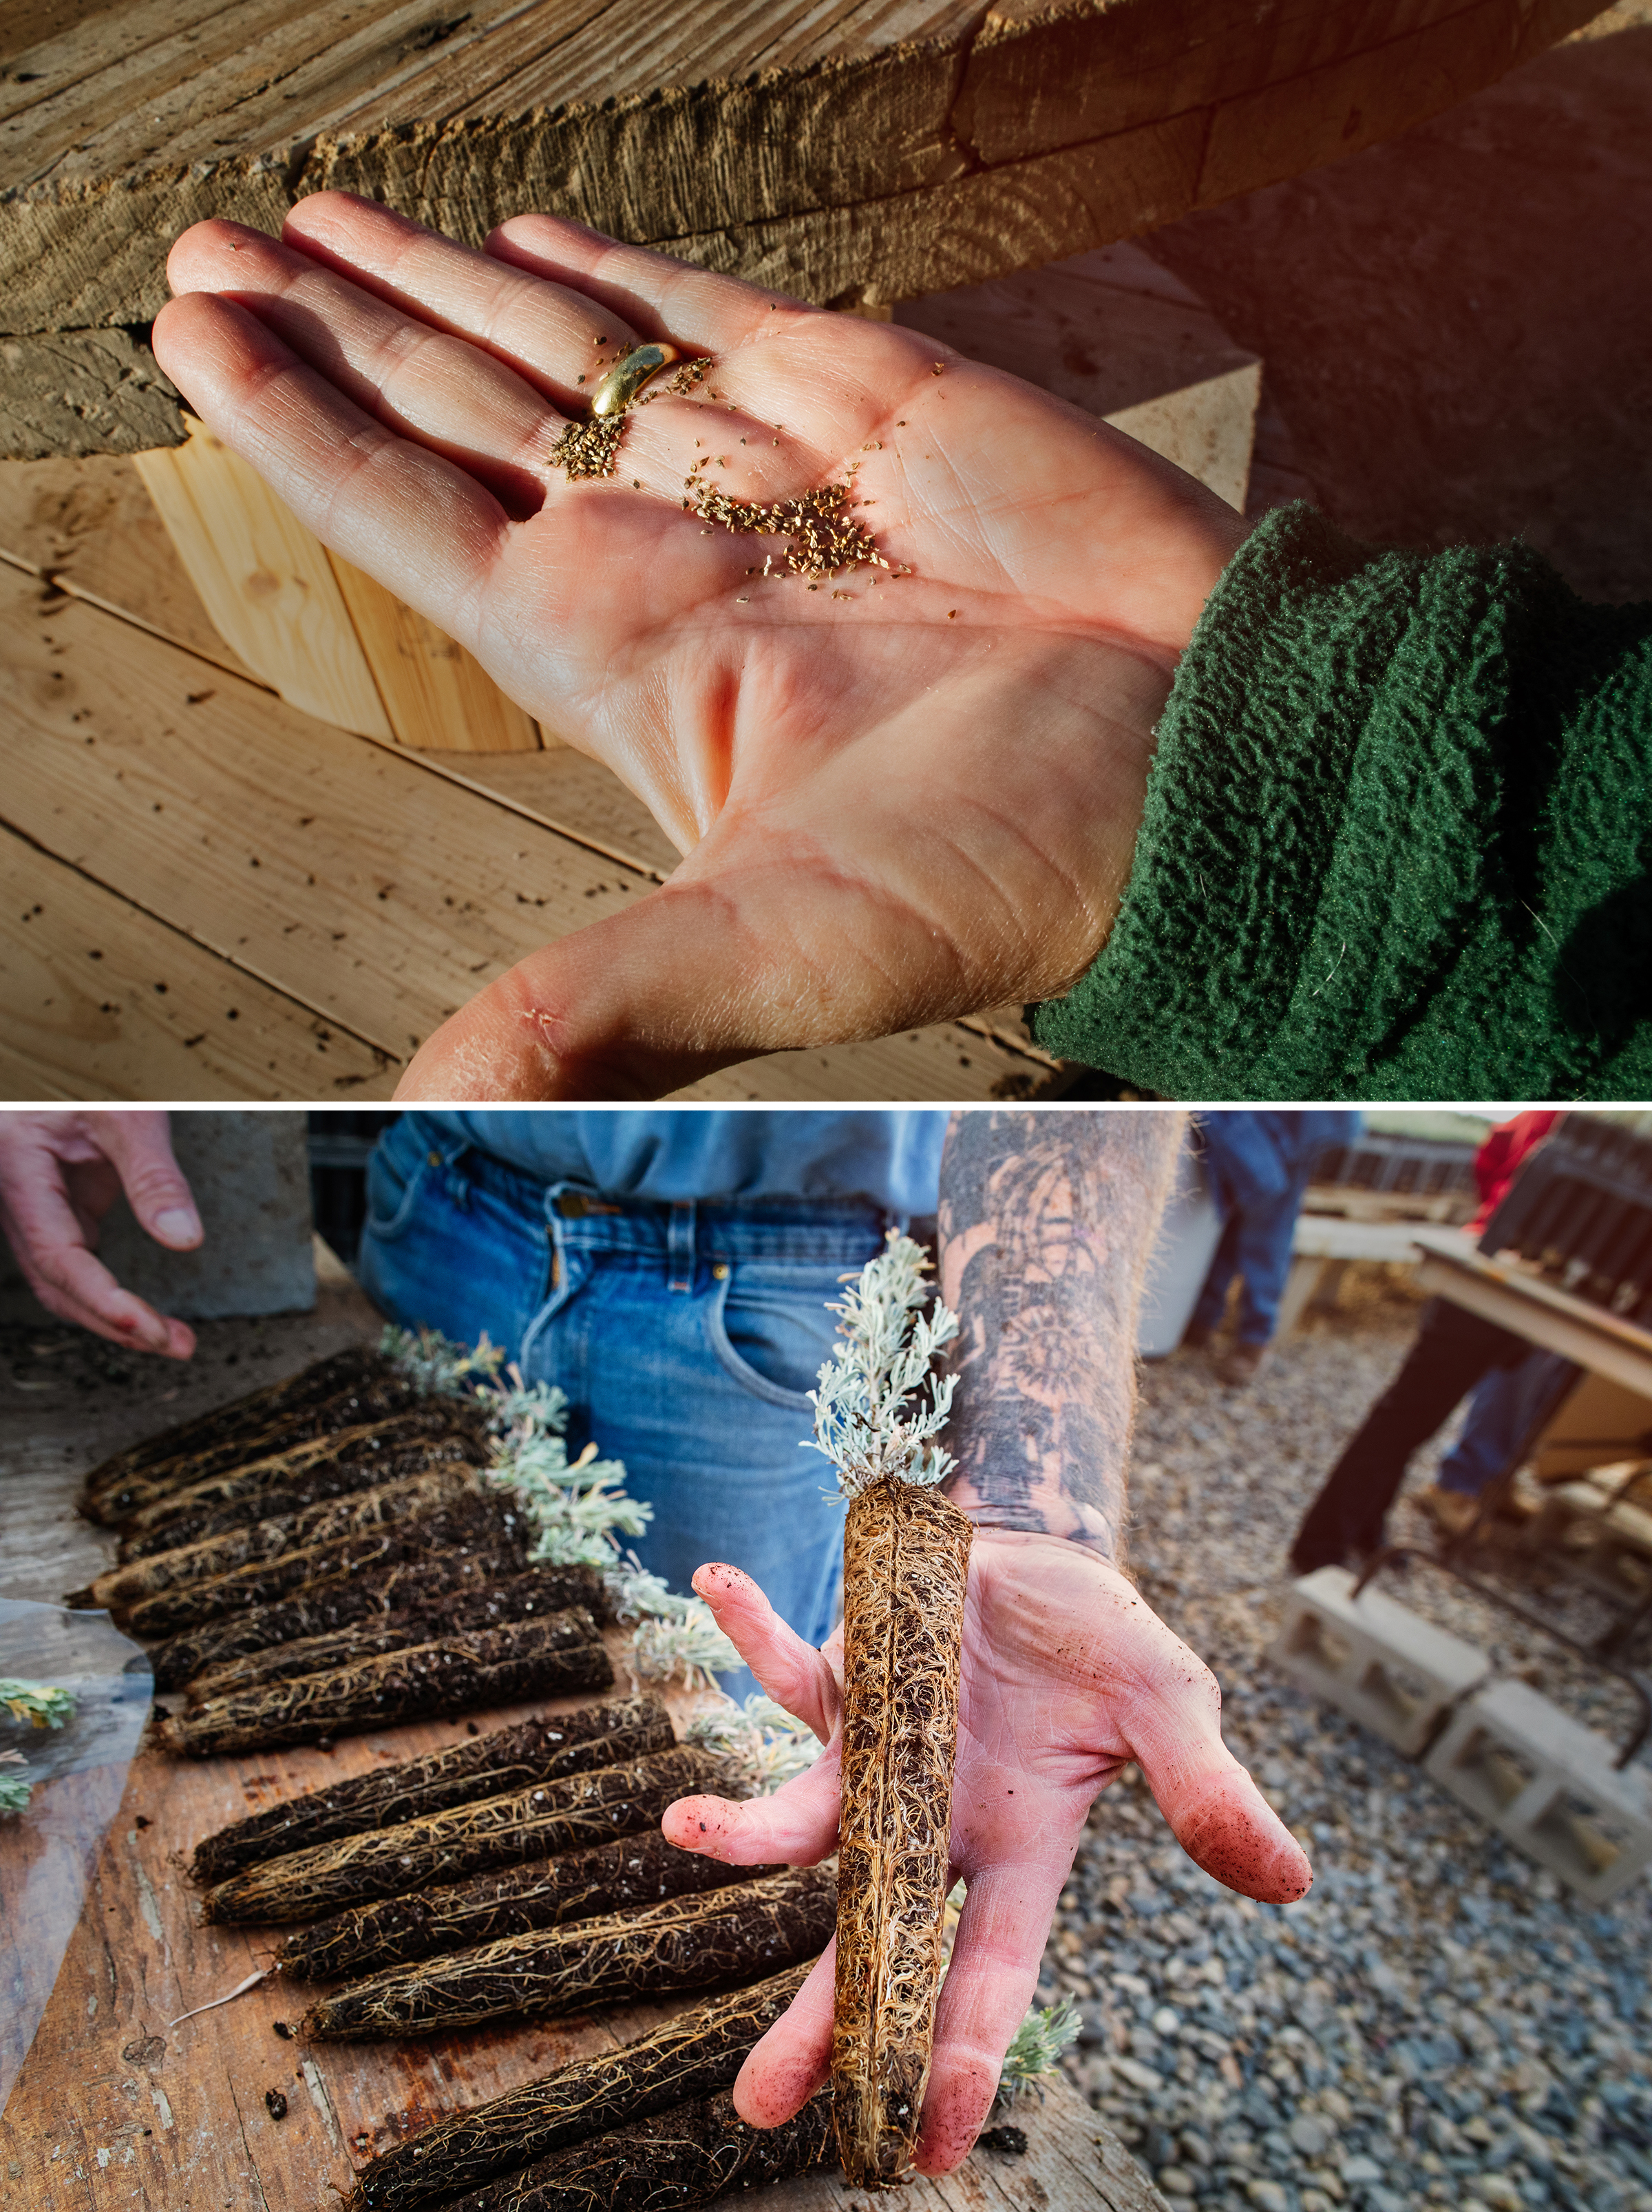 Sown in spring and cared for all summer by inmates, tiny seeds (top) by fall transform into plucky sagebrush seedlings with deep, healthy roots, ready for transplanting to restore habitat. Photos: Mike Fernandez/Audubon